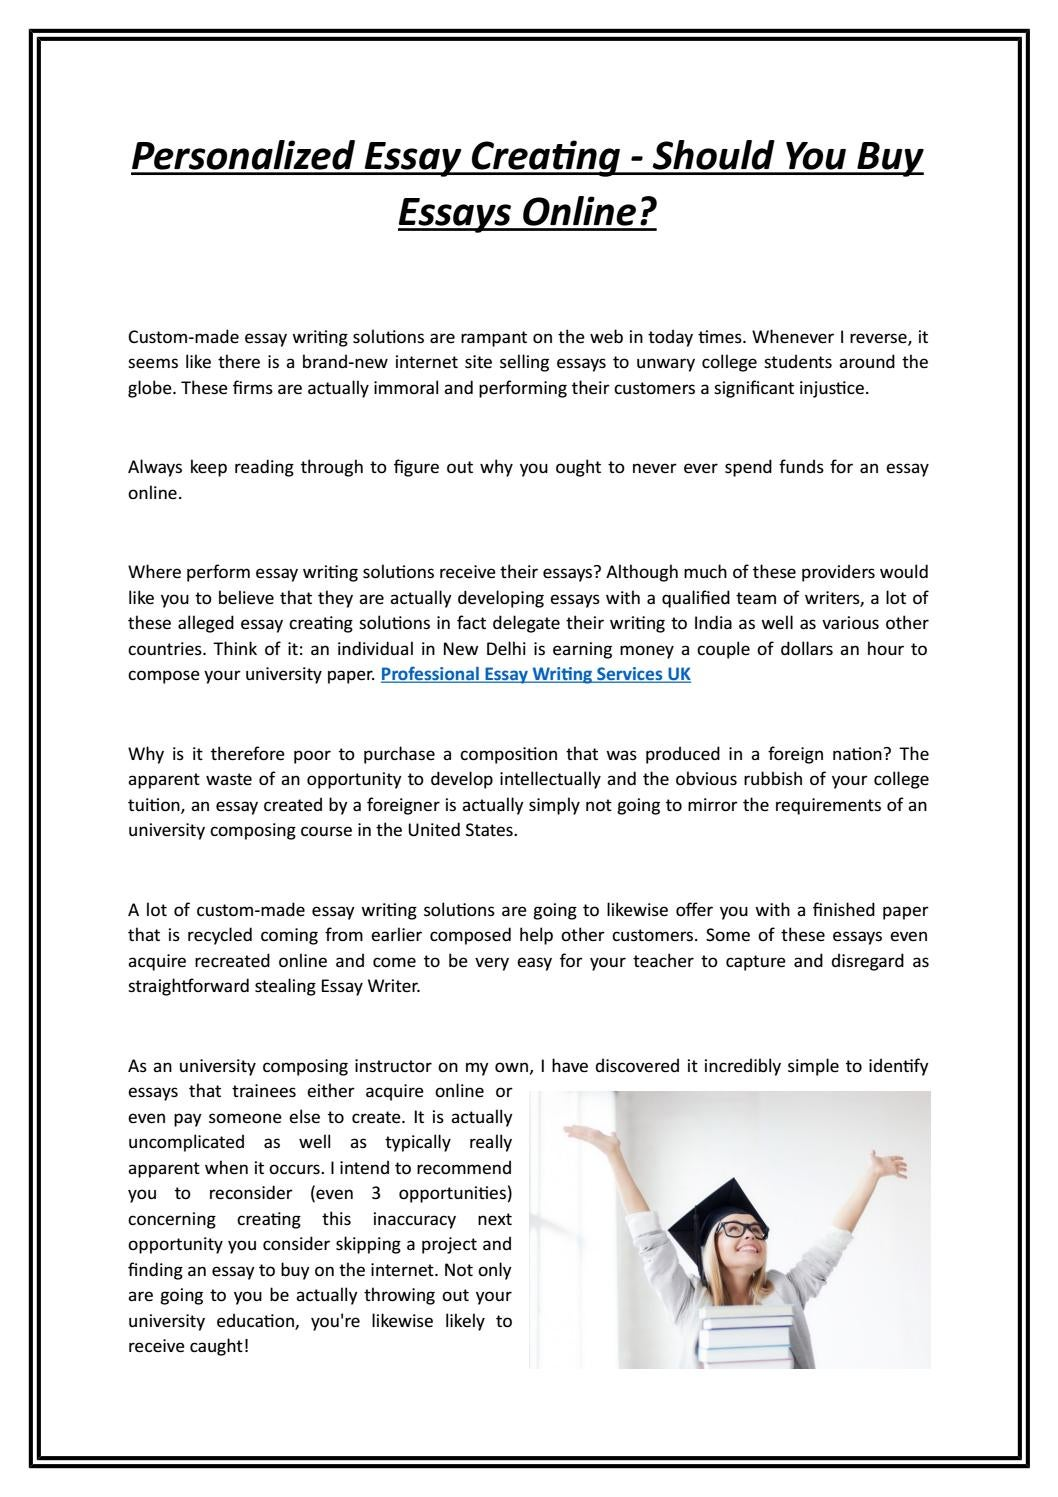 Custom university essay writer sites usa how to write a strong introduction